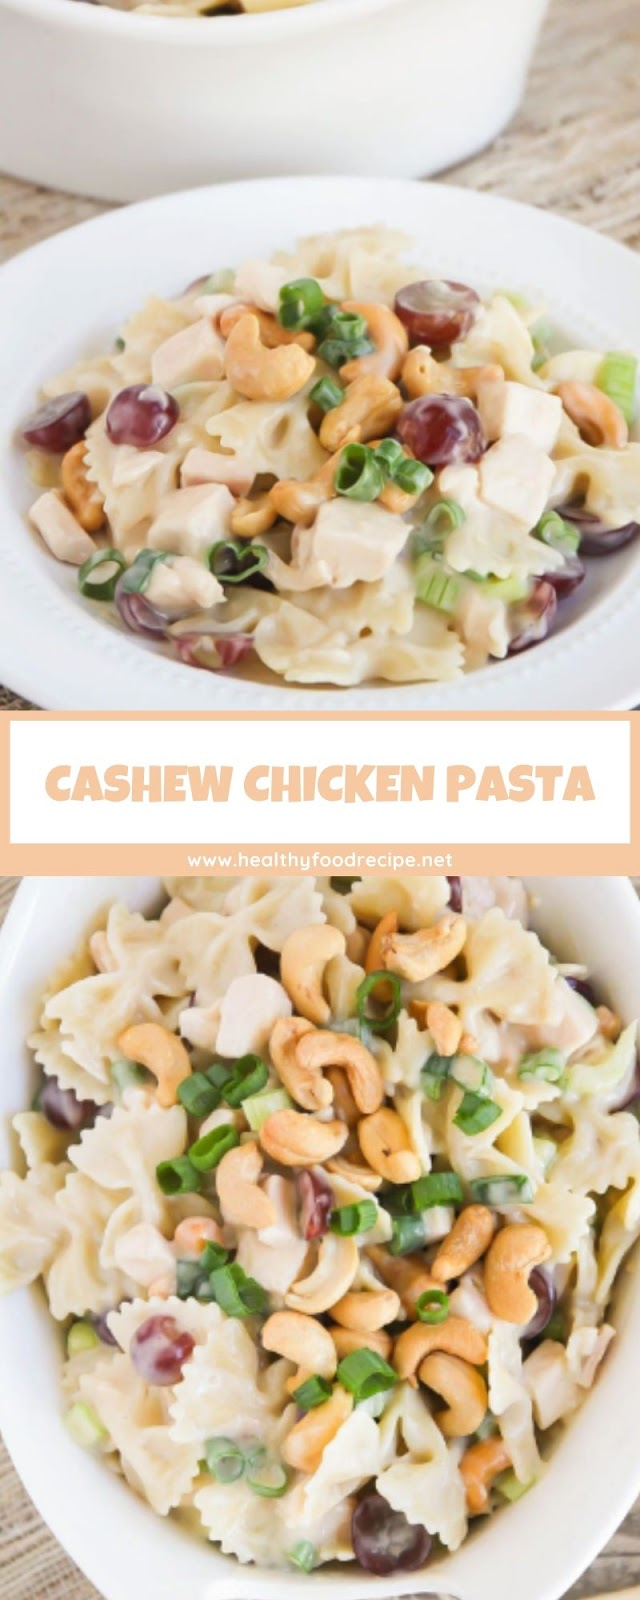 CASHEW CHICKEN PASTA